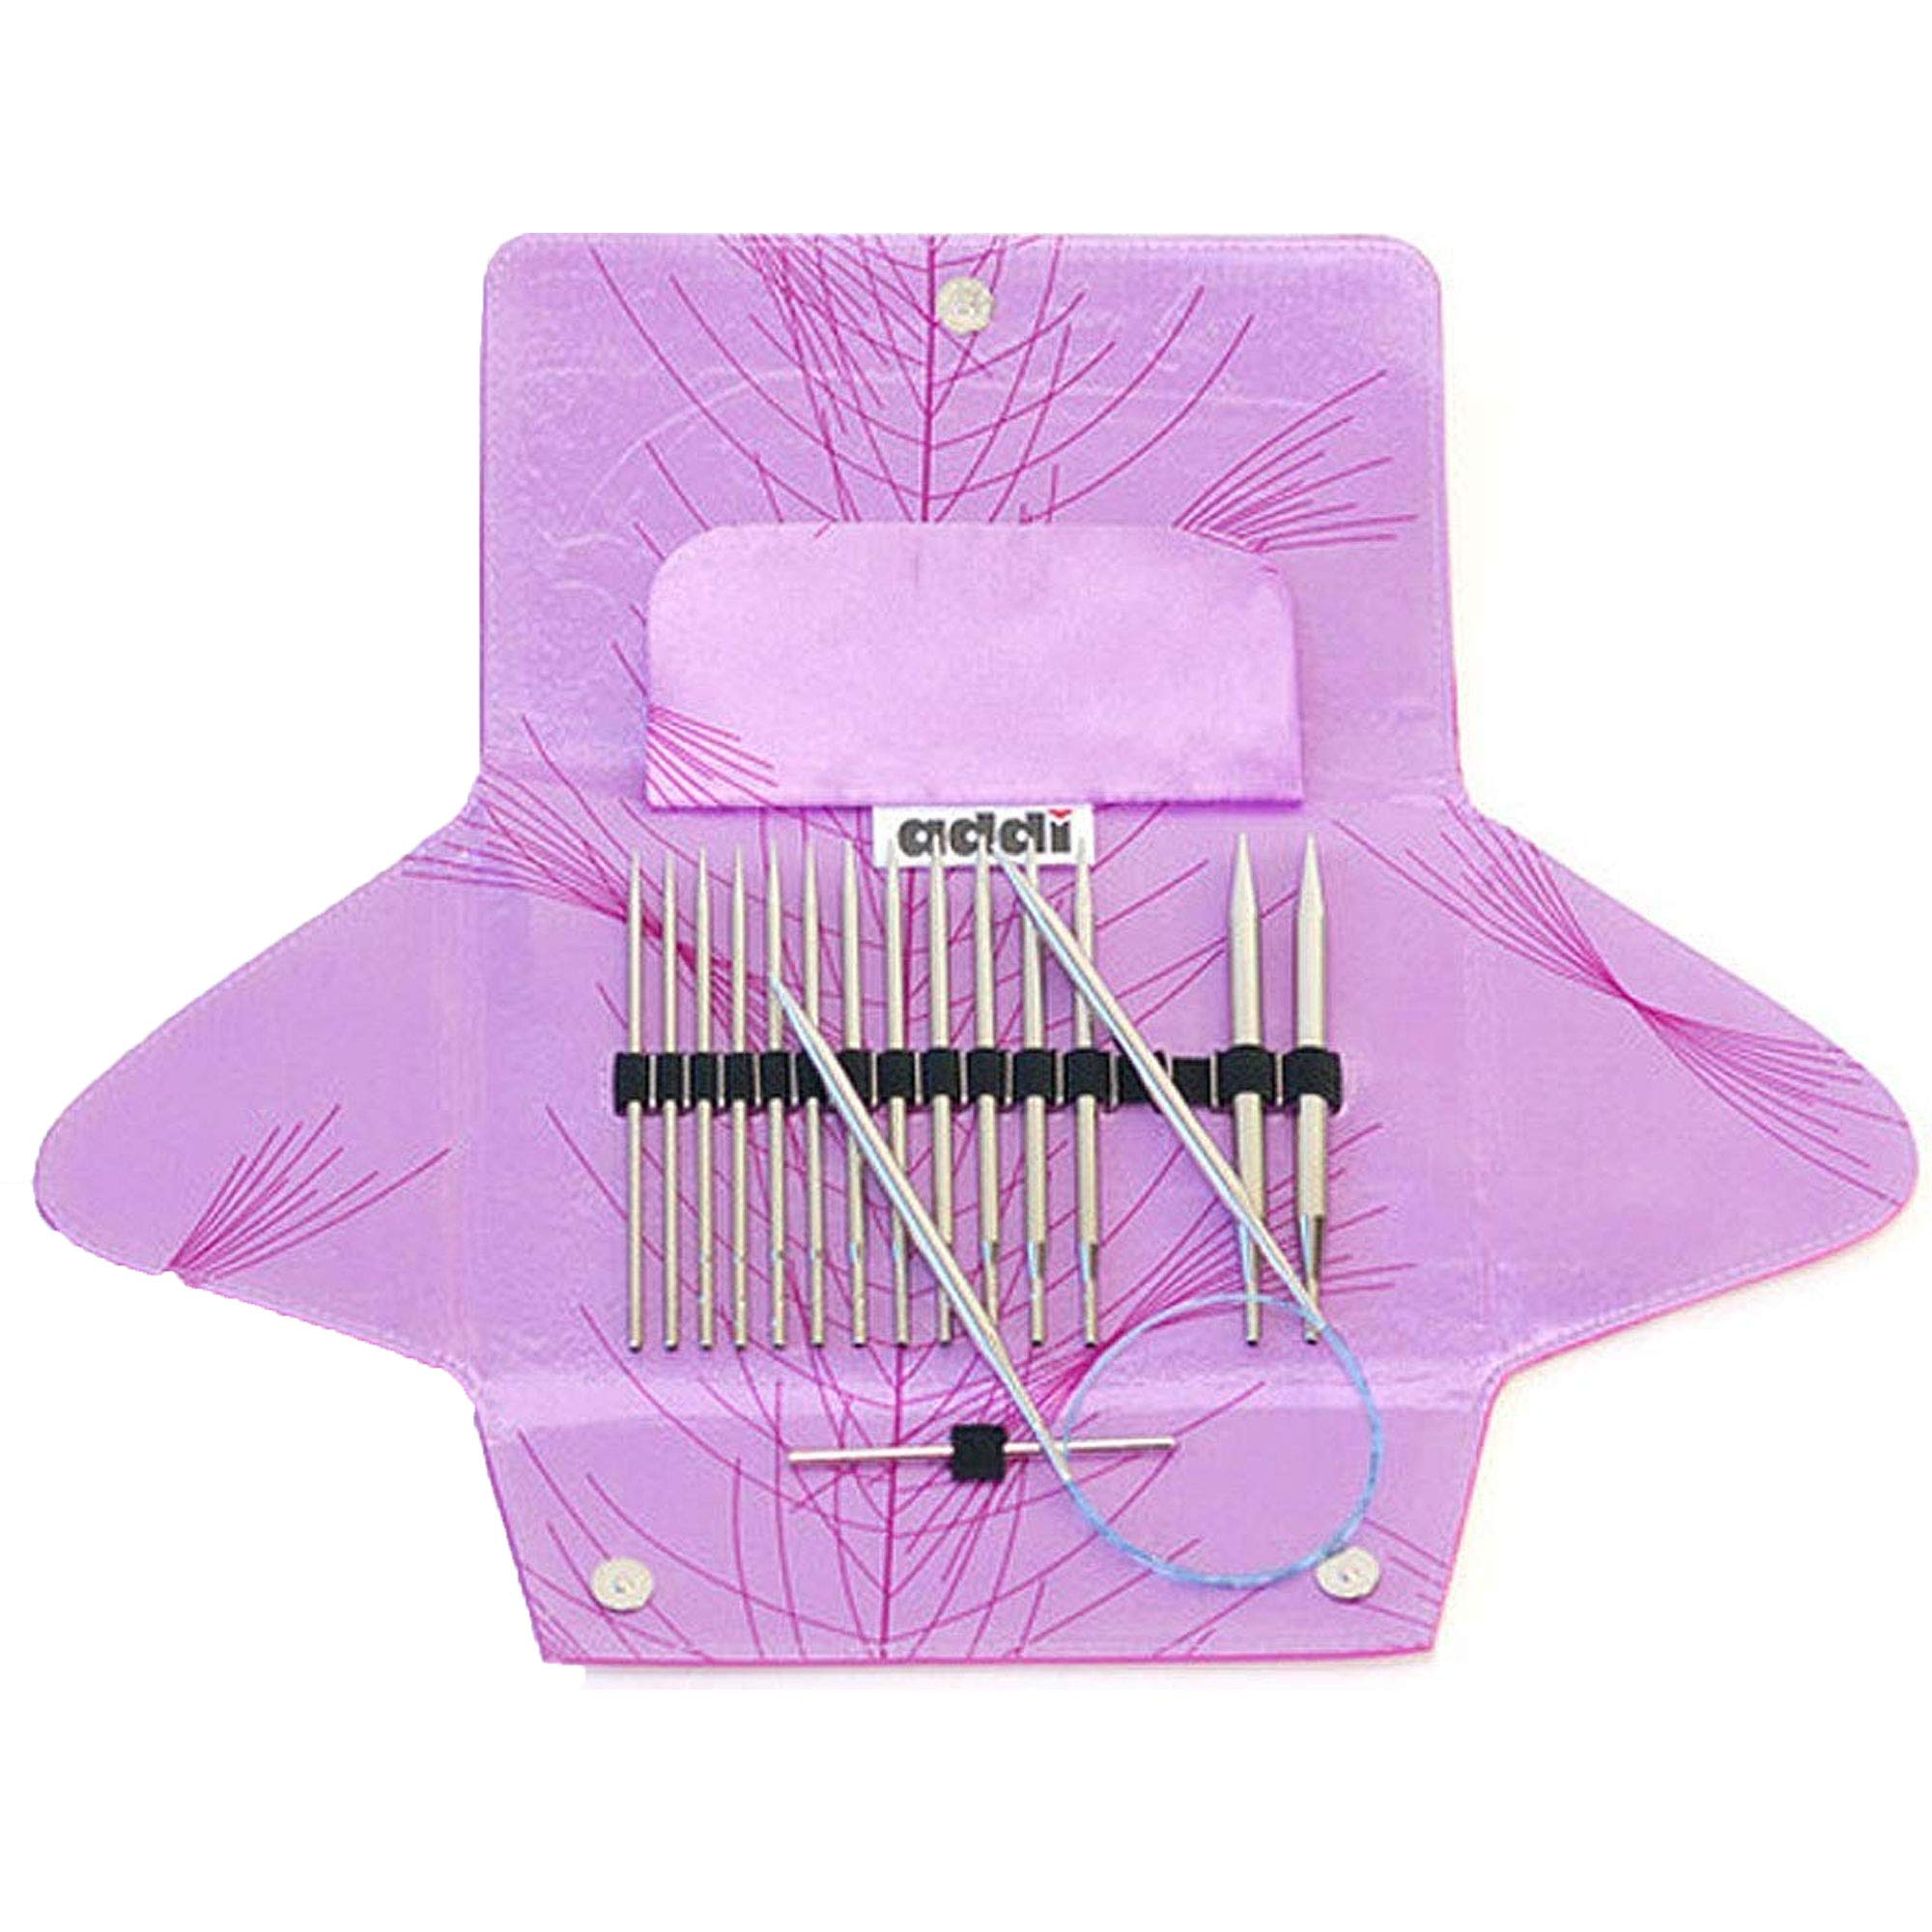 addi Click Standard Rocket Lace Long Tip Interchangeable Circular Knitting Needle System with Exclusive Blue Cords by addi (Image #1)